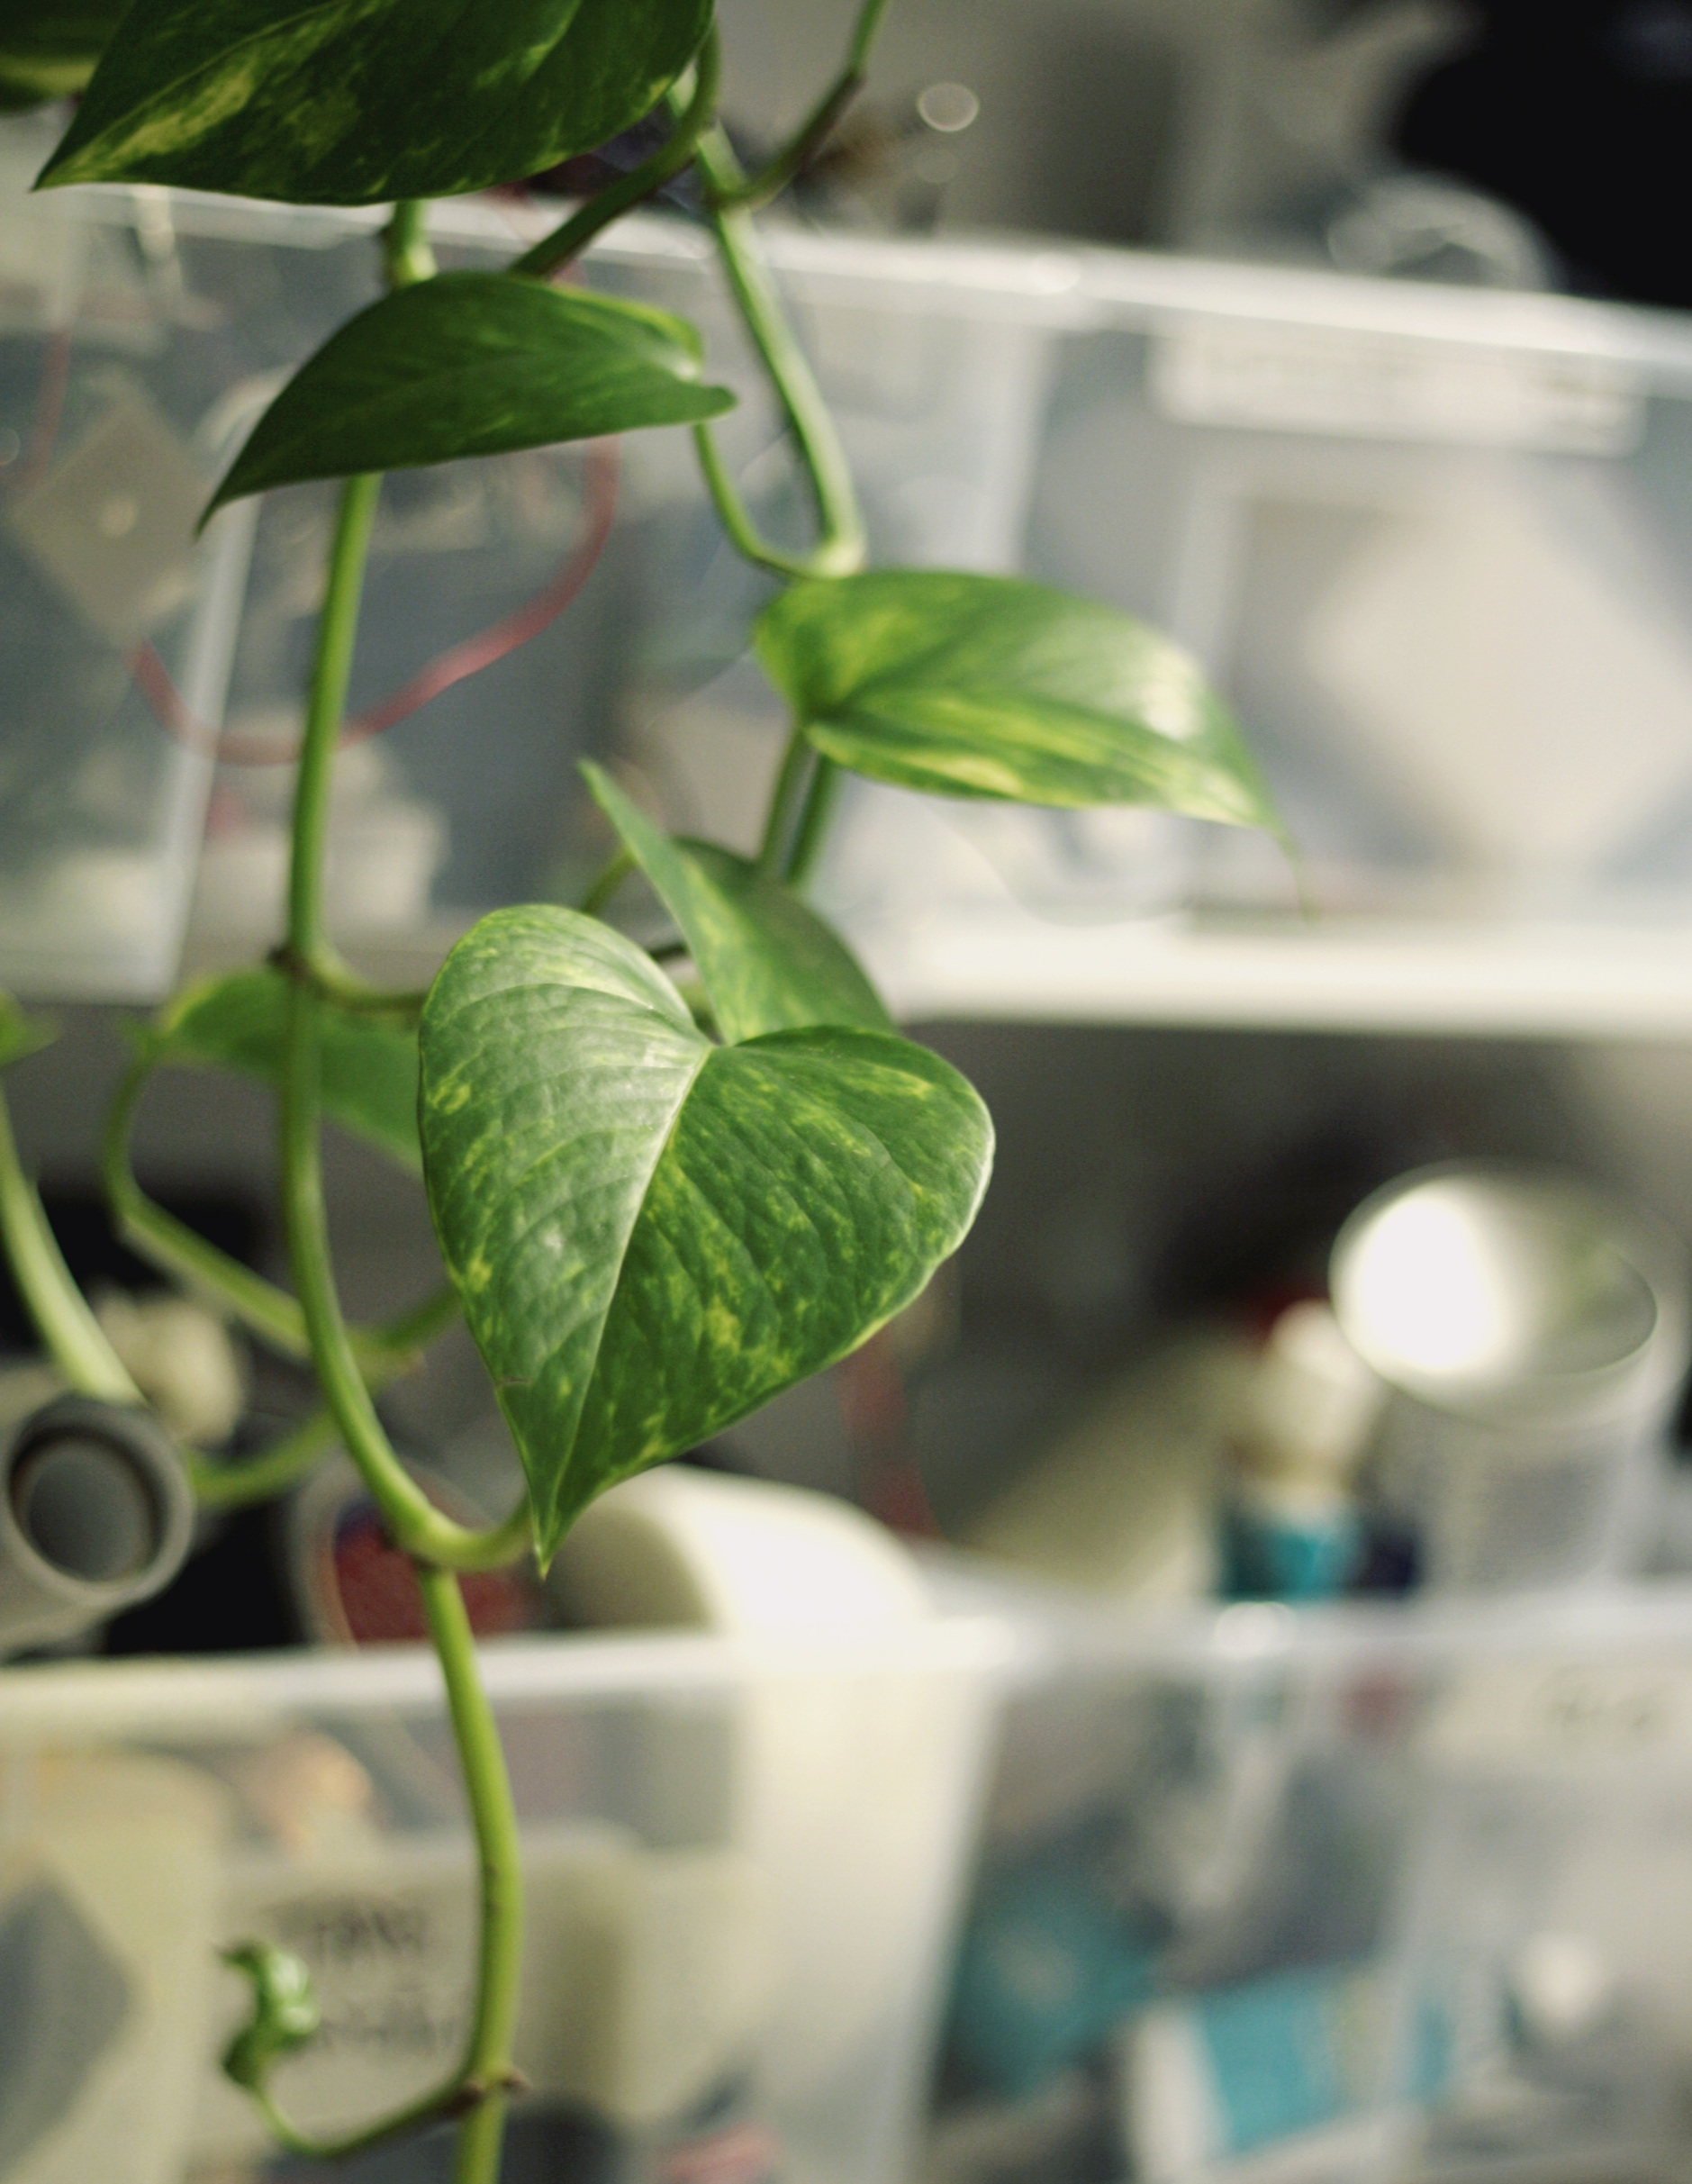 the Devil's Vine in our prototyping lab